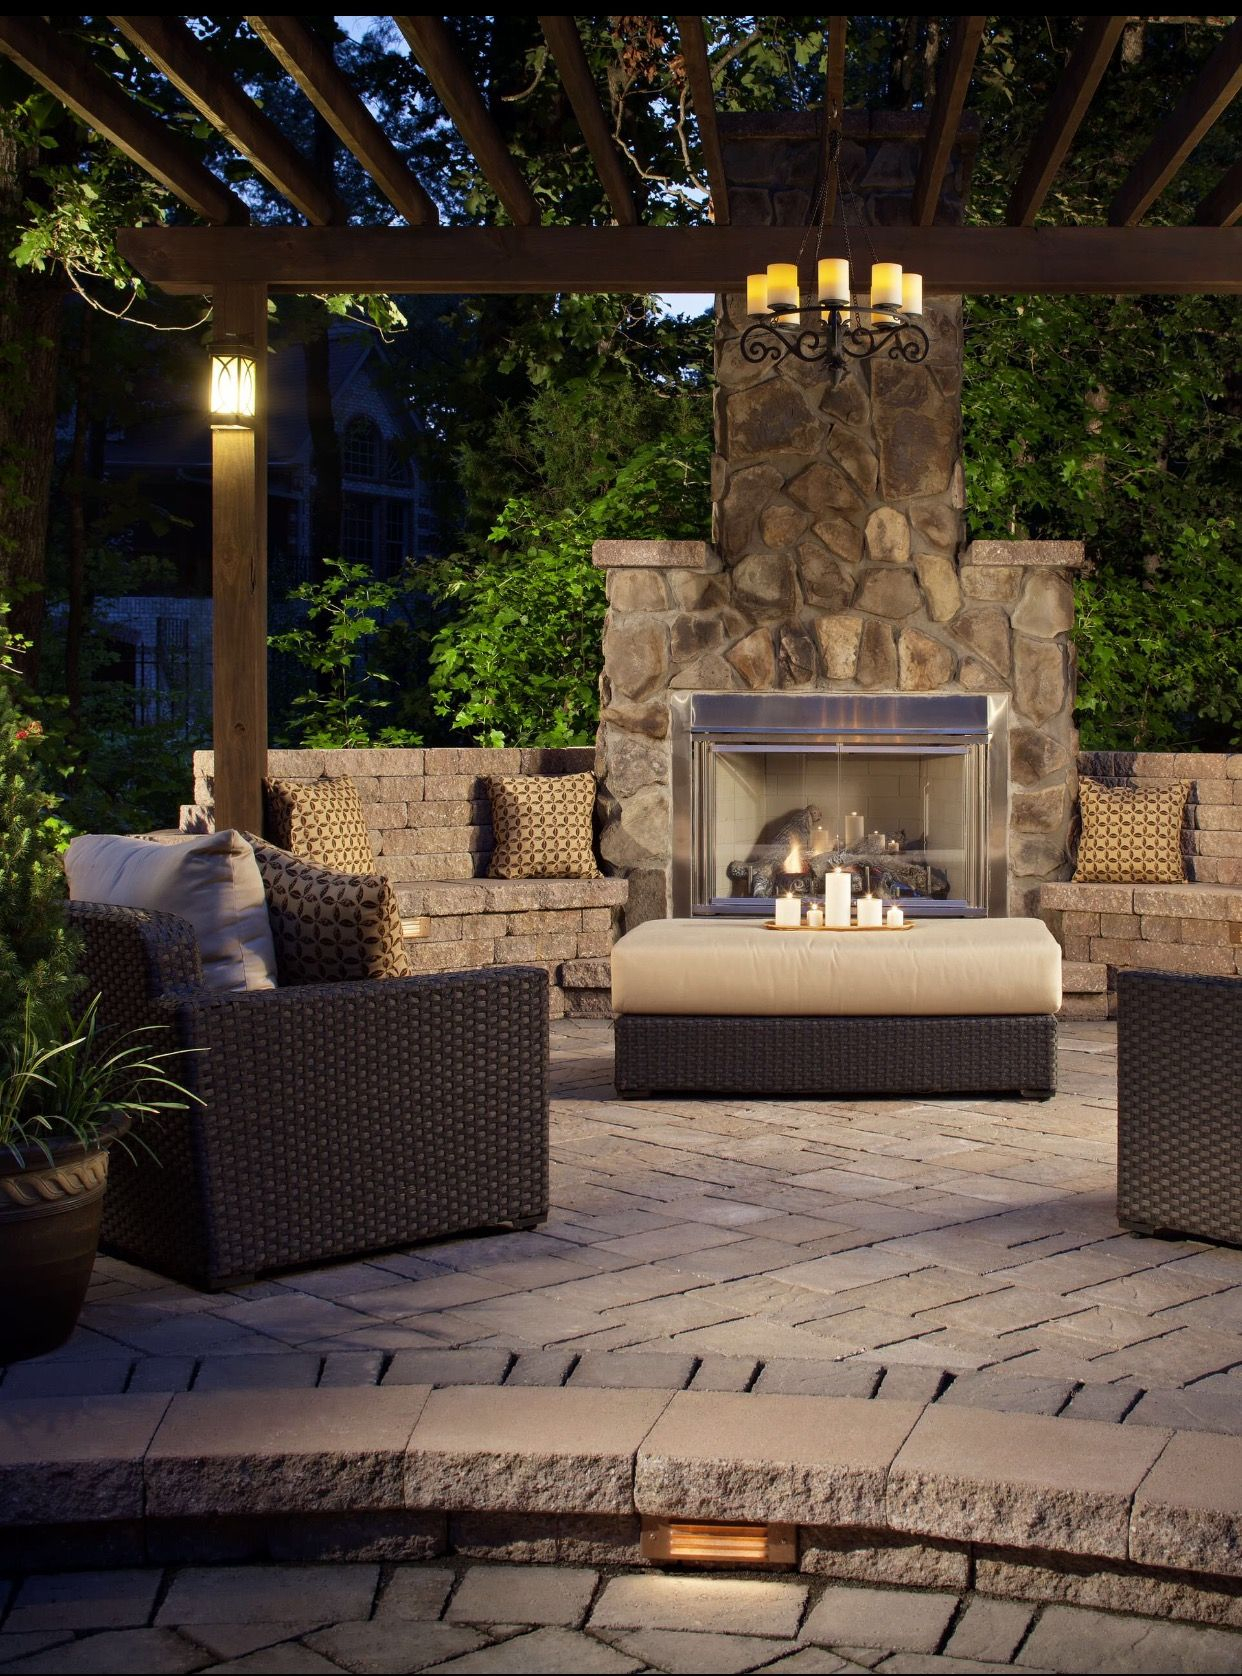 Pin By Aisha Watson On Decor Outdoor Fireplace Designs Patio